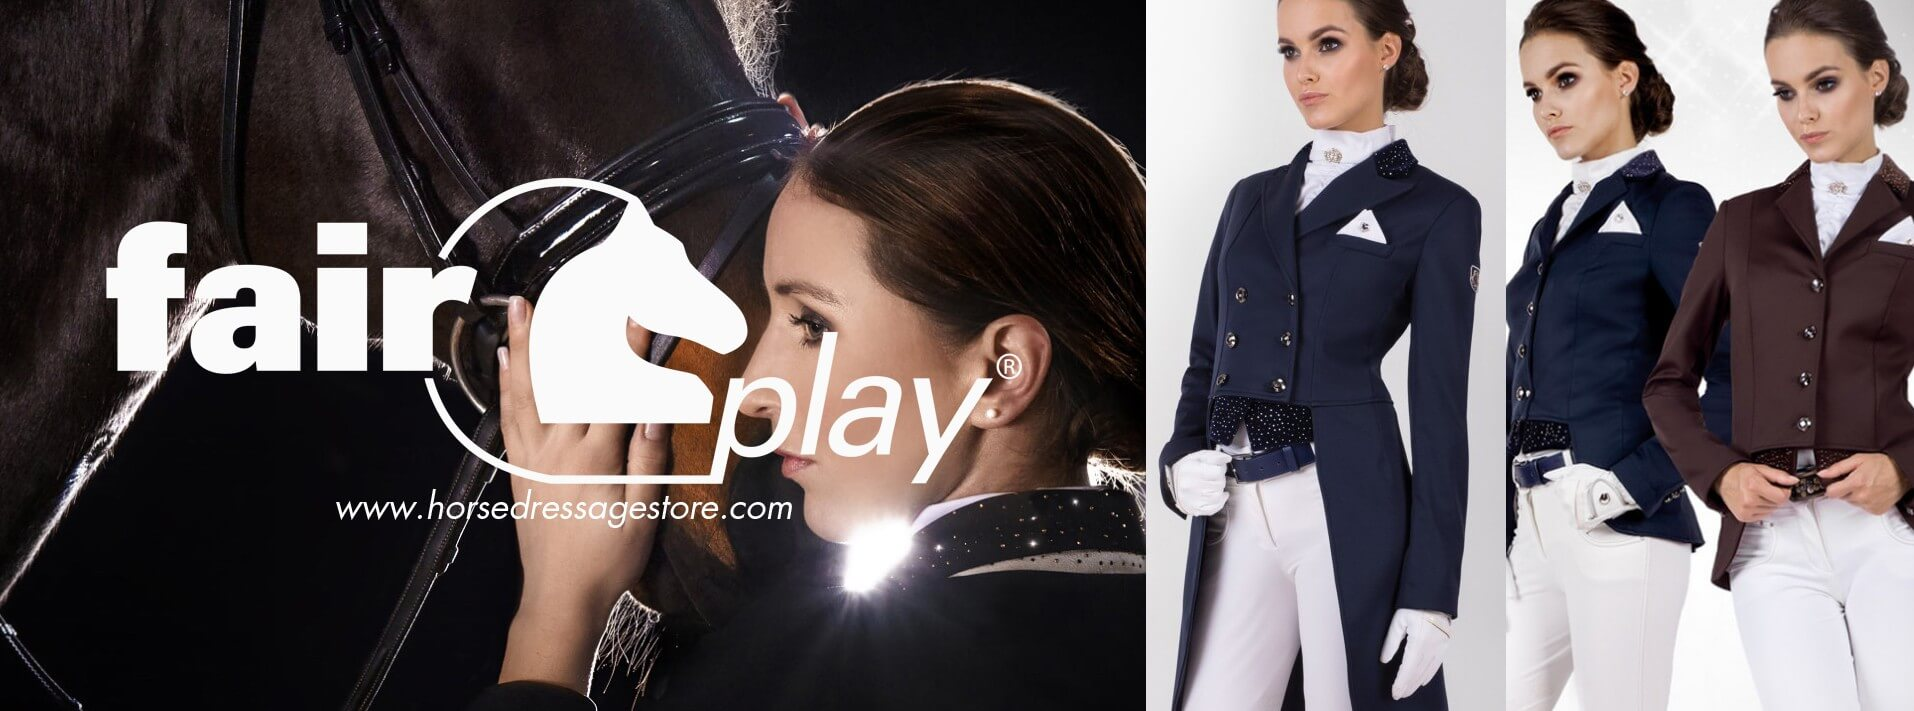 fairplay equestrian